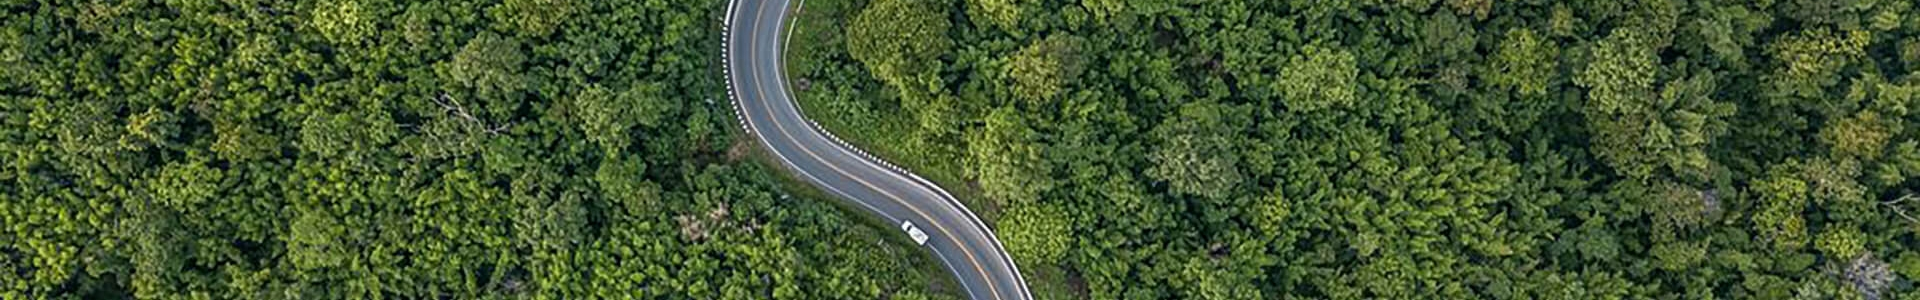 Road to carbon neutral. Winding road through forest.